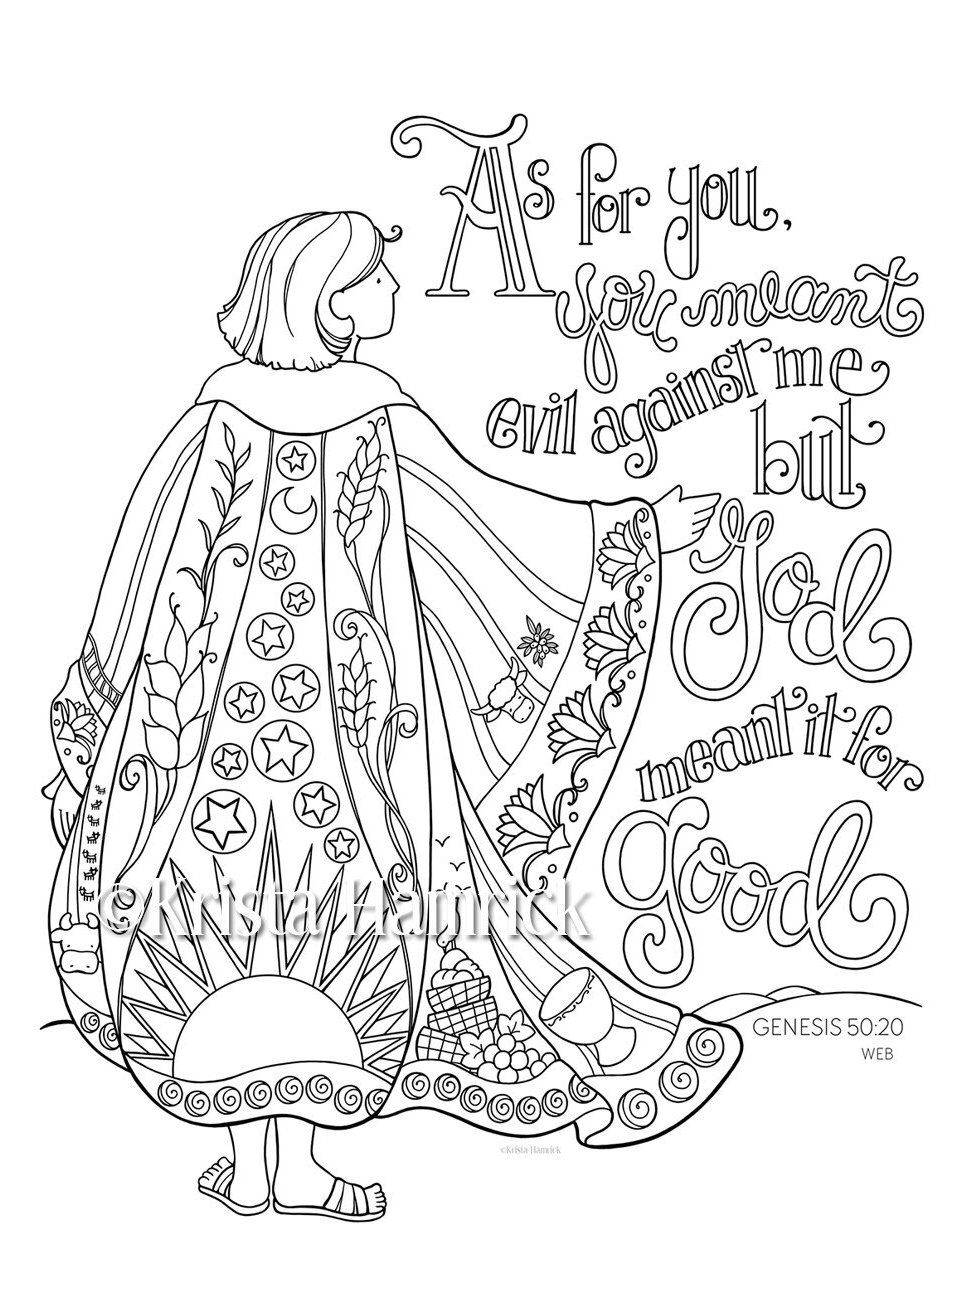 Coloring Page 85X11 Bible Journaling Tip In 6X8 By KristaHamrick On Etsy Listing 452390660 Josephs Coat Of Many Colors